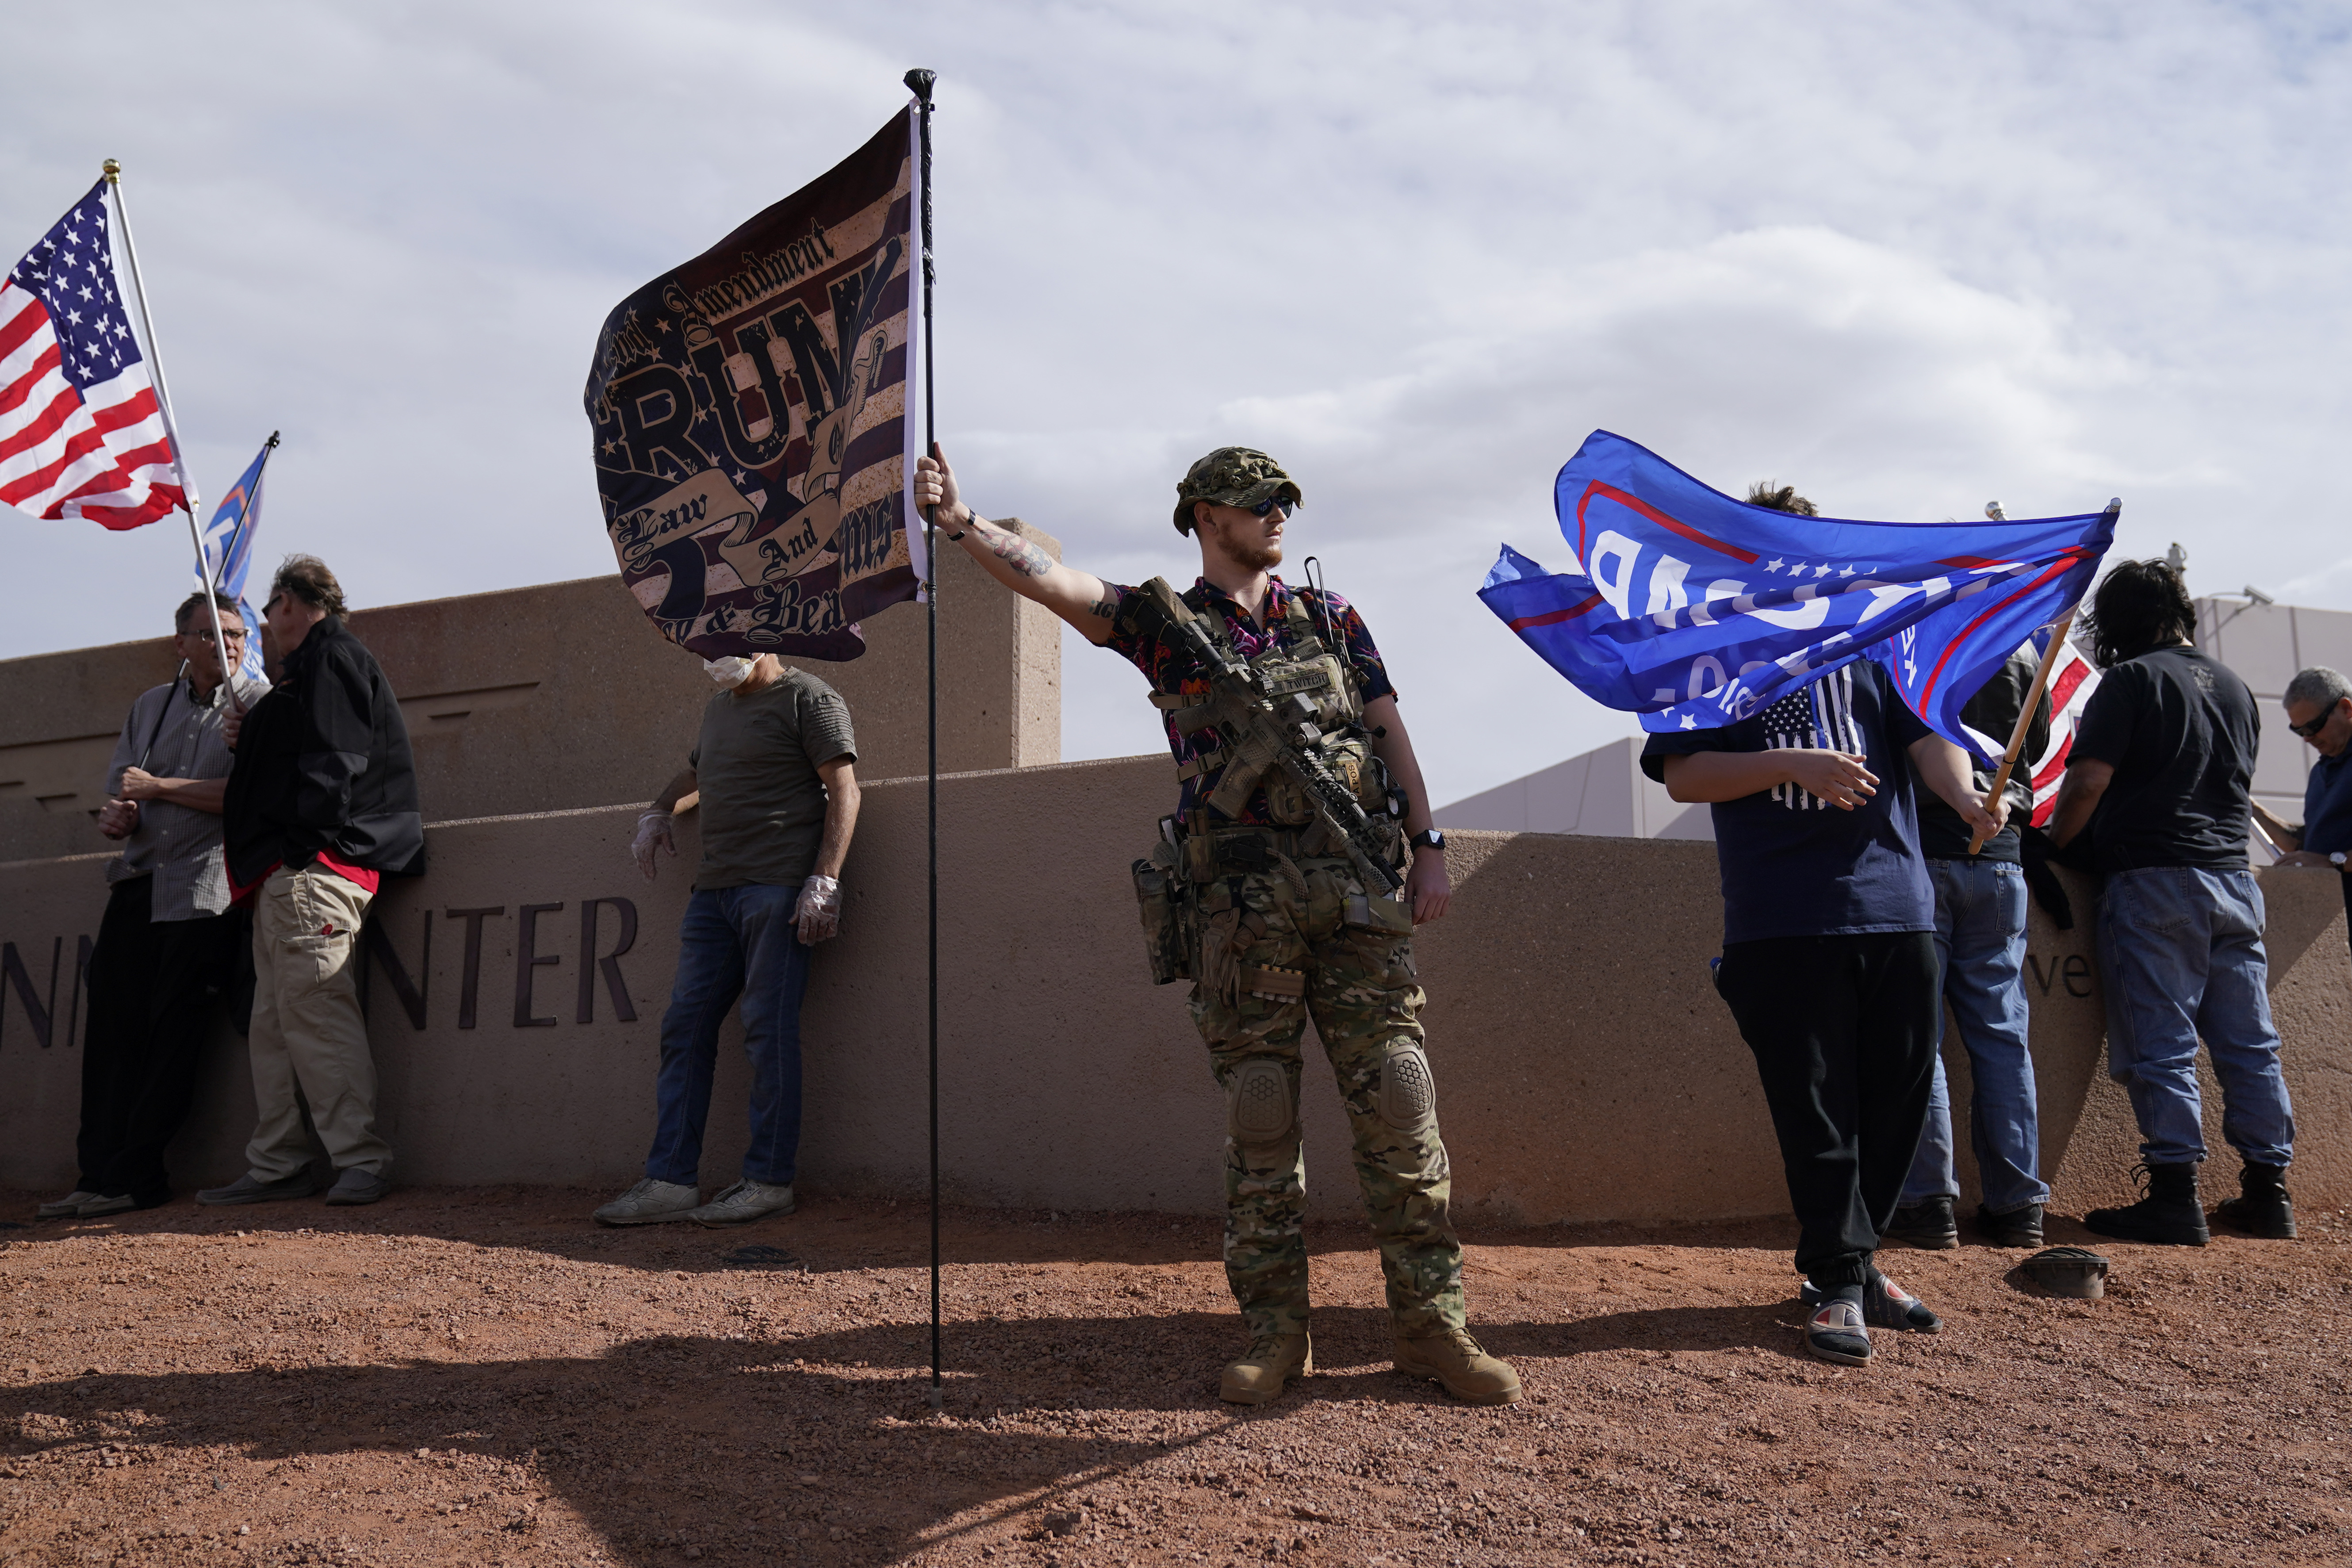 An armed supporter of President Donald Trump holds a flag while standing with others outside of the Clark County Elections Department in North Las Vegas, Nev., Saturday, Nov. 7, 2020. Democrat Joe Biden defeated President Donald Trump to become the 46th president of the United States on Saturday, positioning himself to lead a nation gripped by the historic pandemic and a confluence of economic and social turmoil. (AP Photo/John Locher)